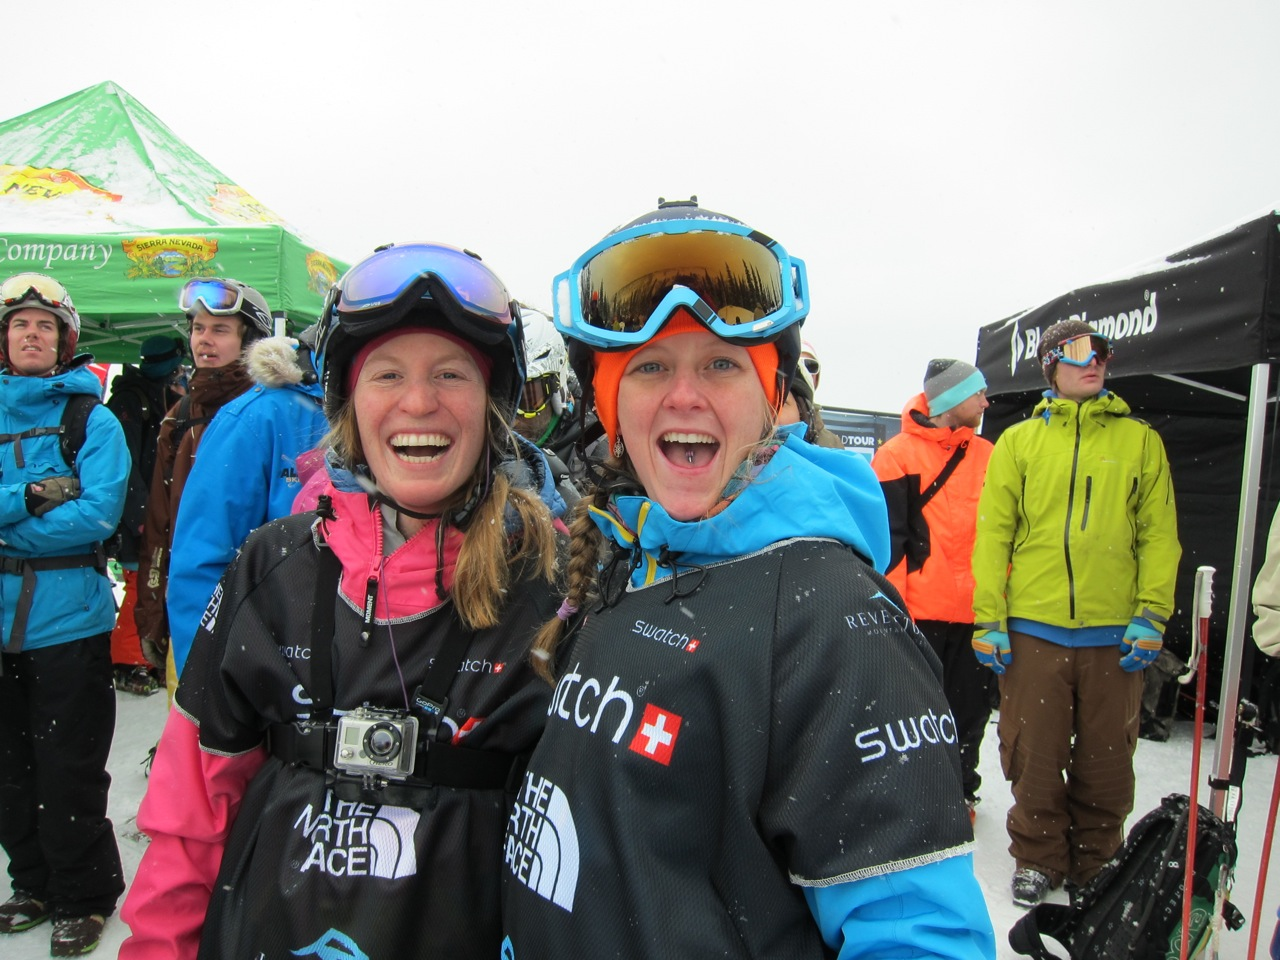 Louise & Ashley sending their love to doglotion